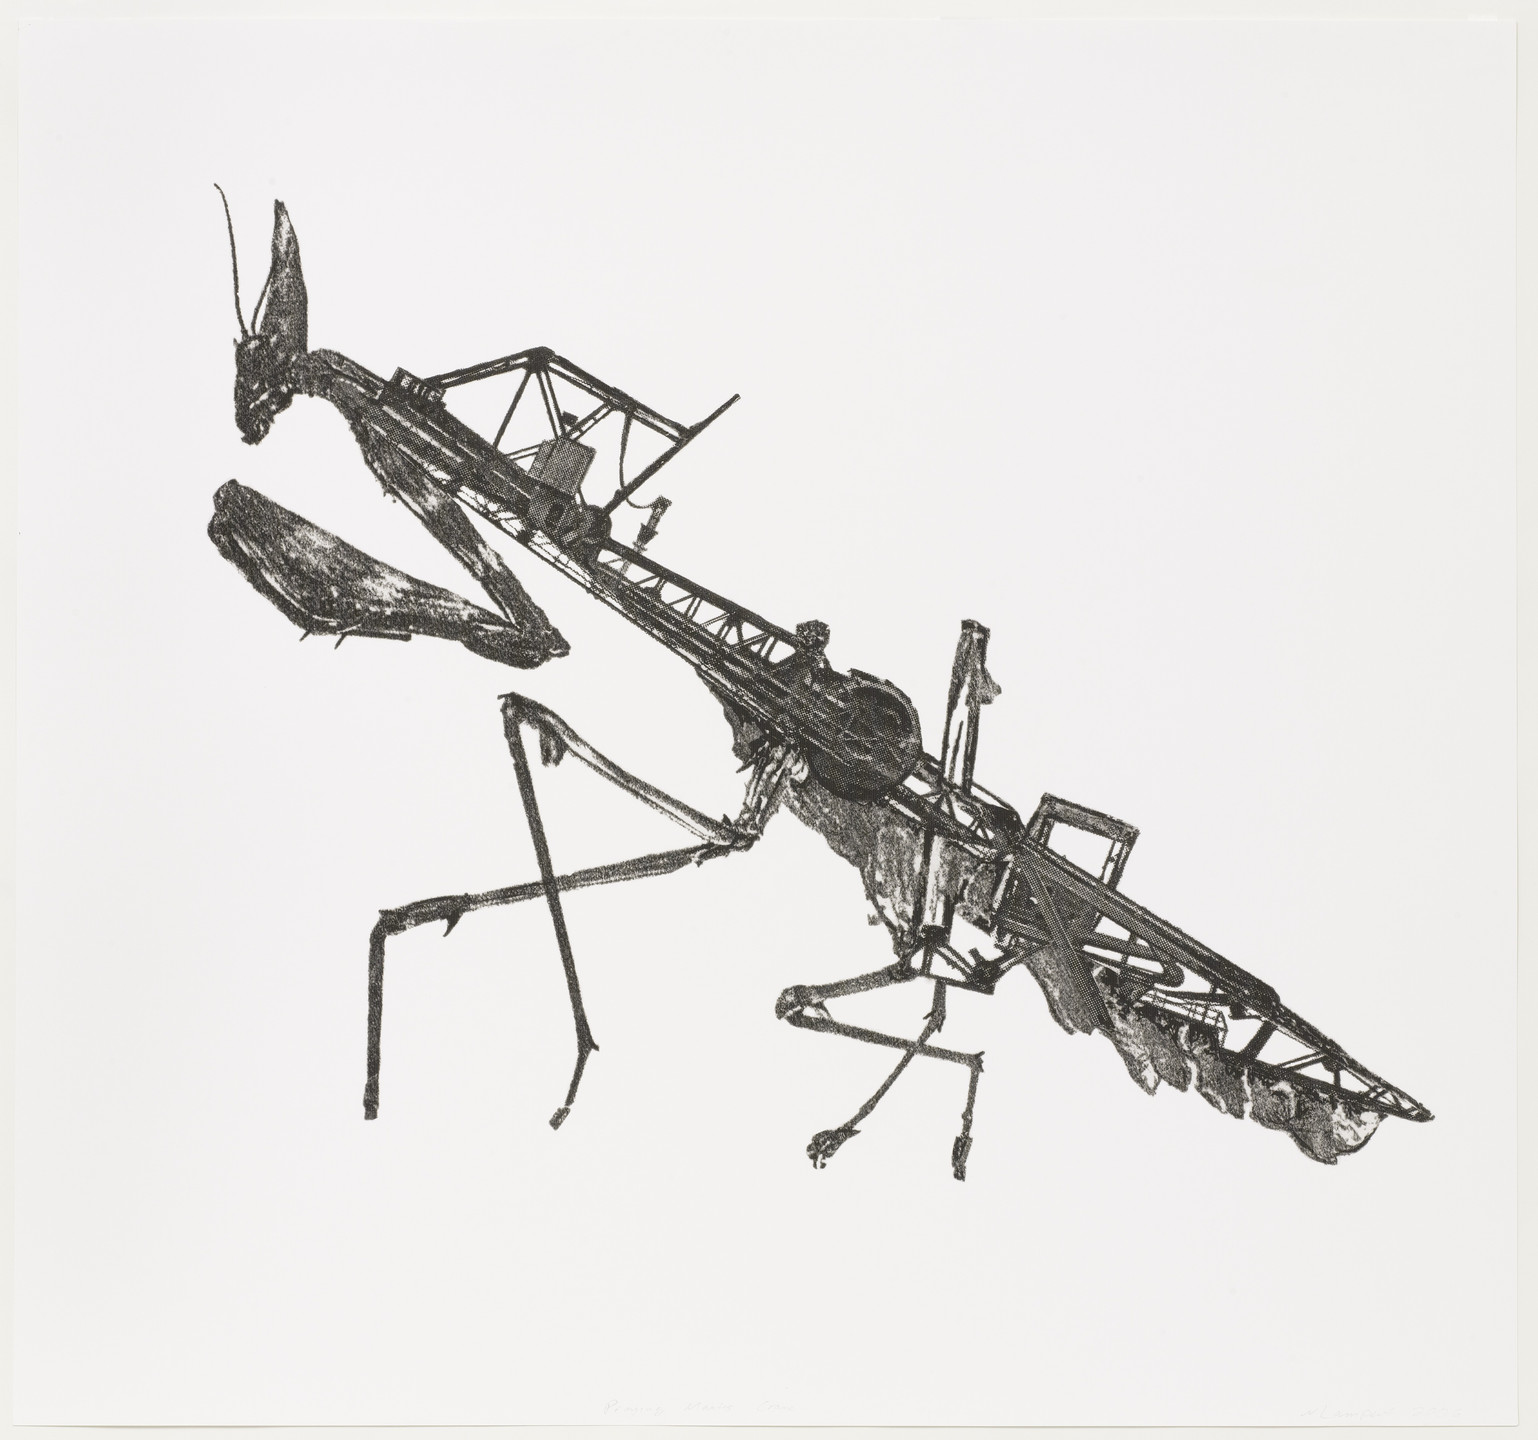 Nicolas Lampert. Praying Mantis Crane. 2006